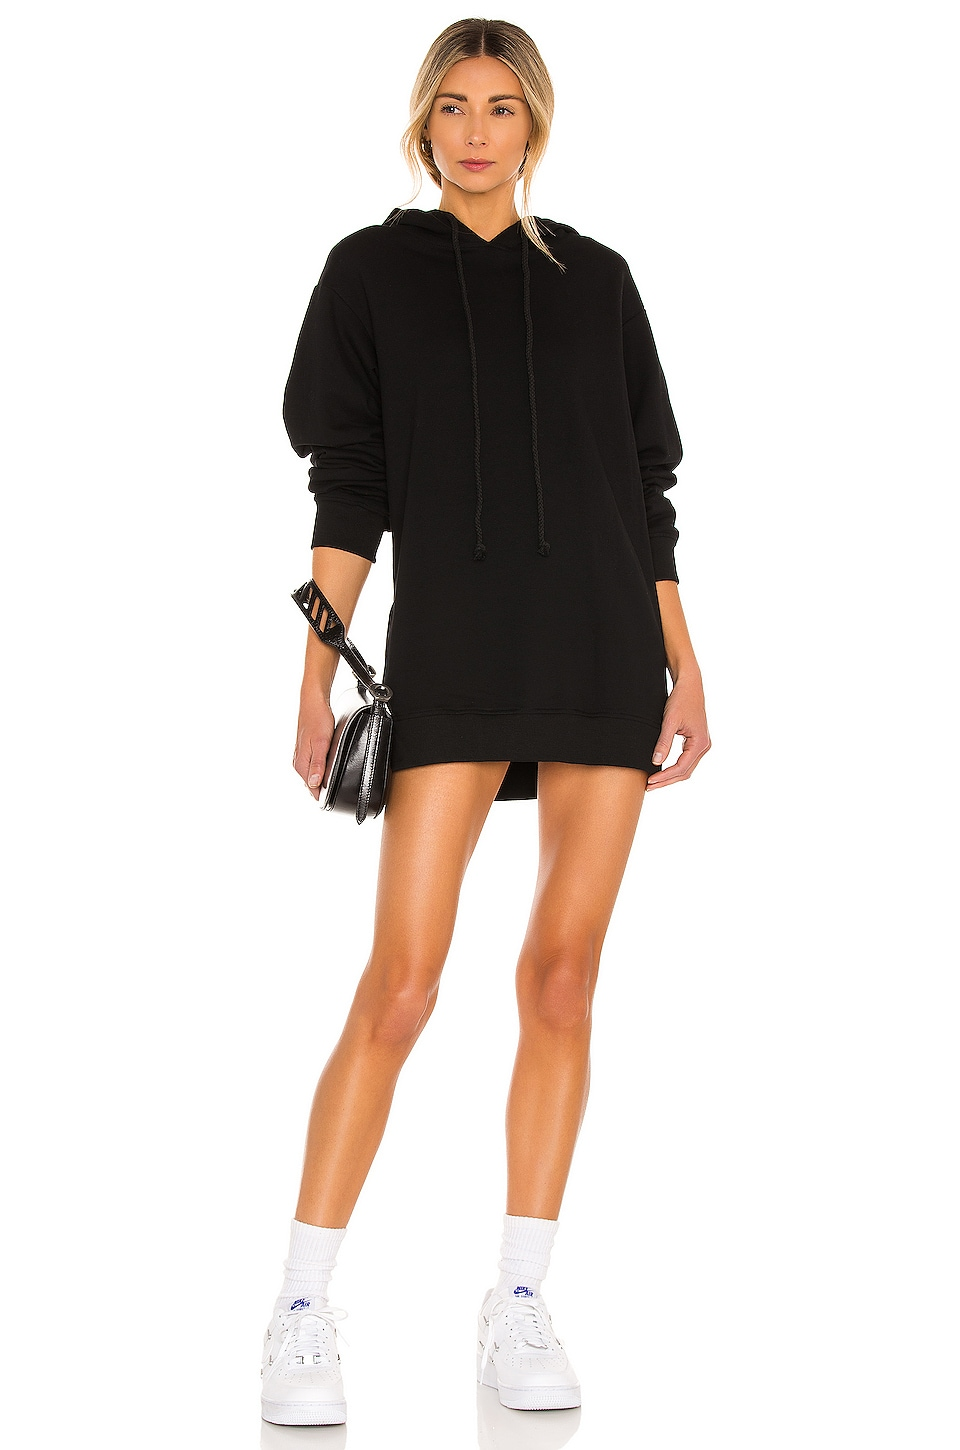 DG Oversized Hoodie Dress by DANIELLE GUIZIO